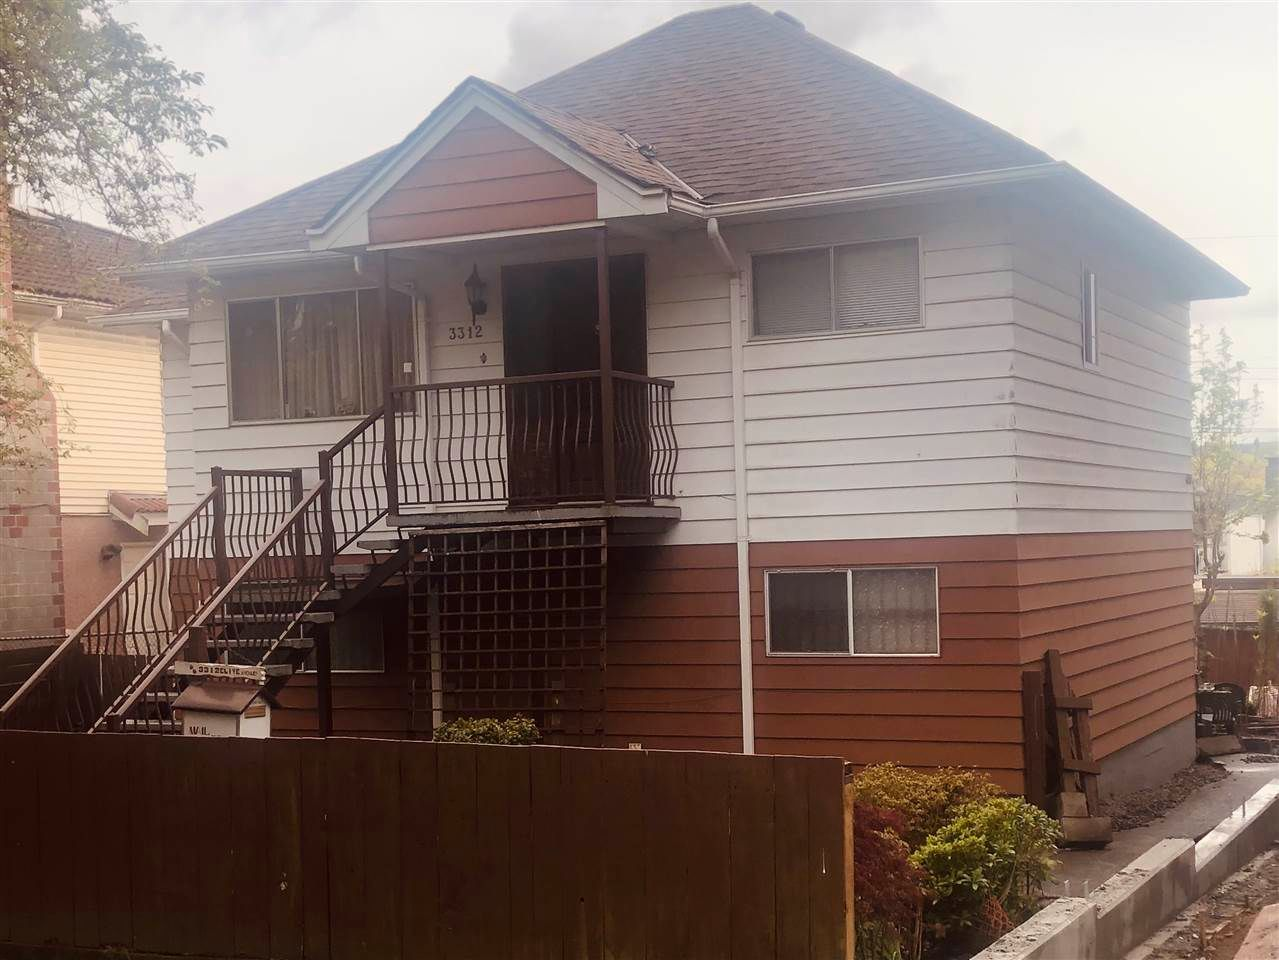 Main Photo: 3312 CLIVE Avenue in Vancouver: Collingwood VE House for sale (Vancouver East)  : MLS®# R2568617